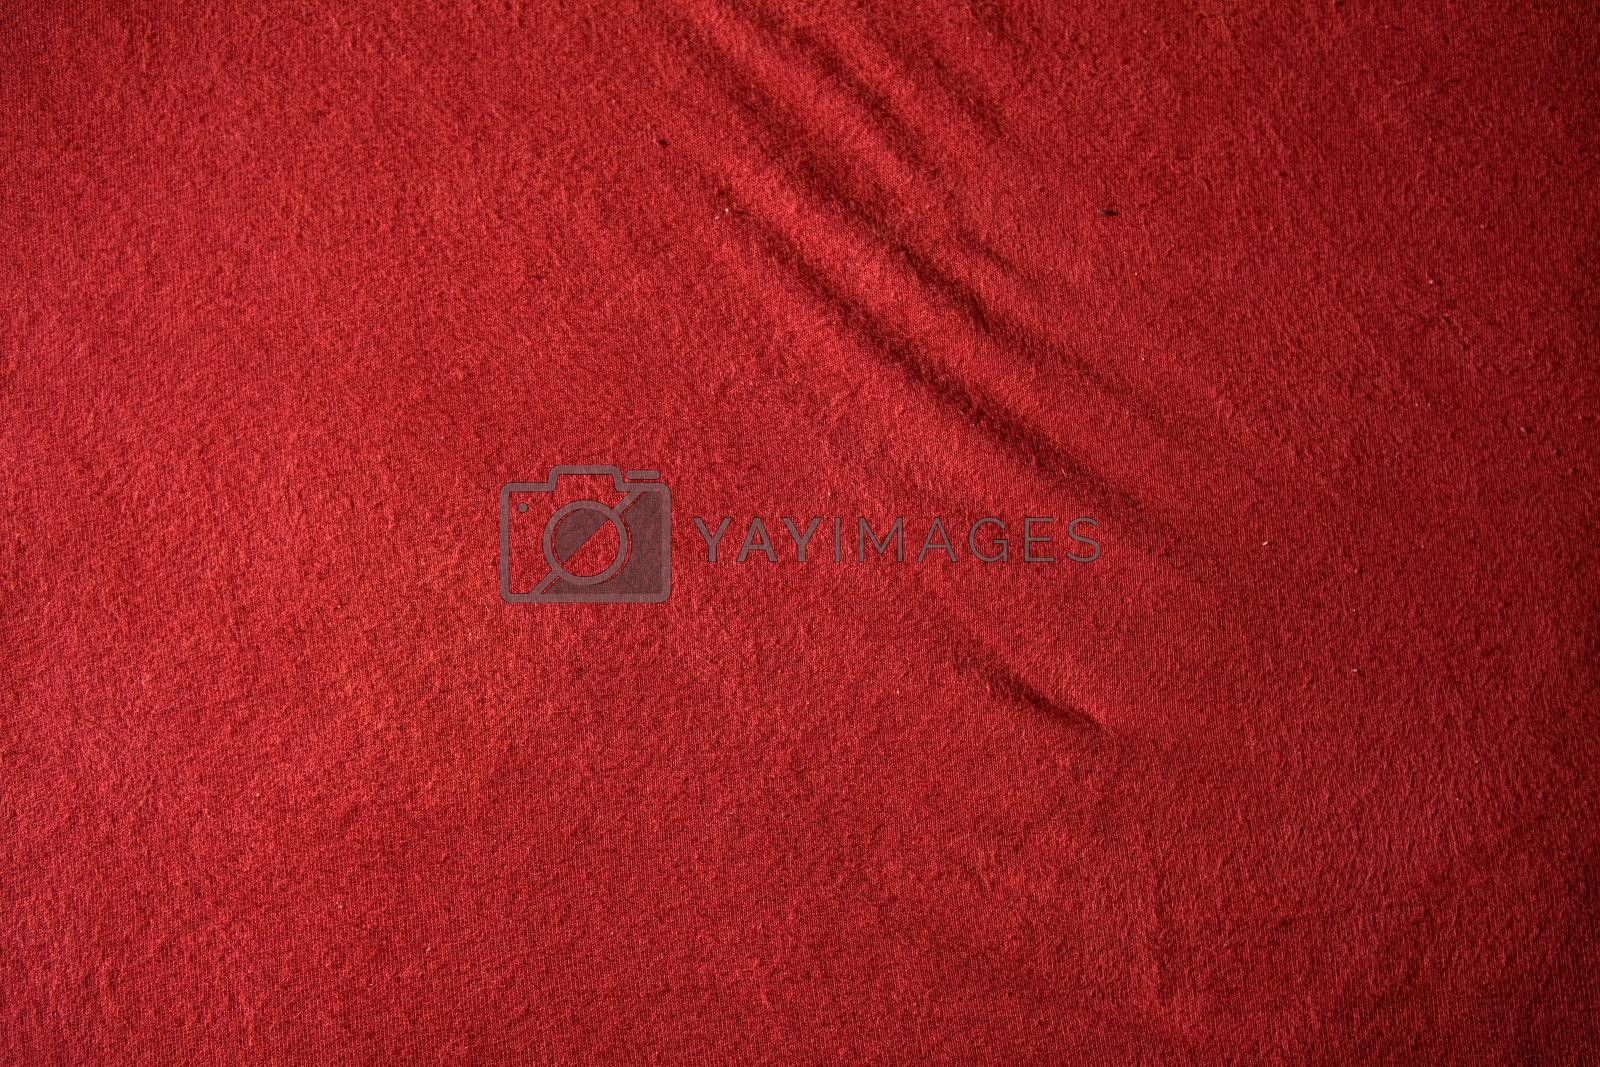 A red cloth texture with strong contrast and lines